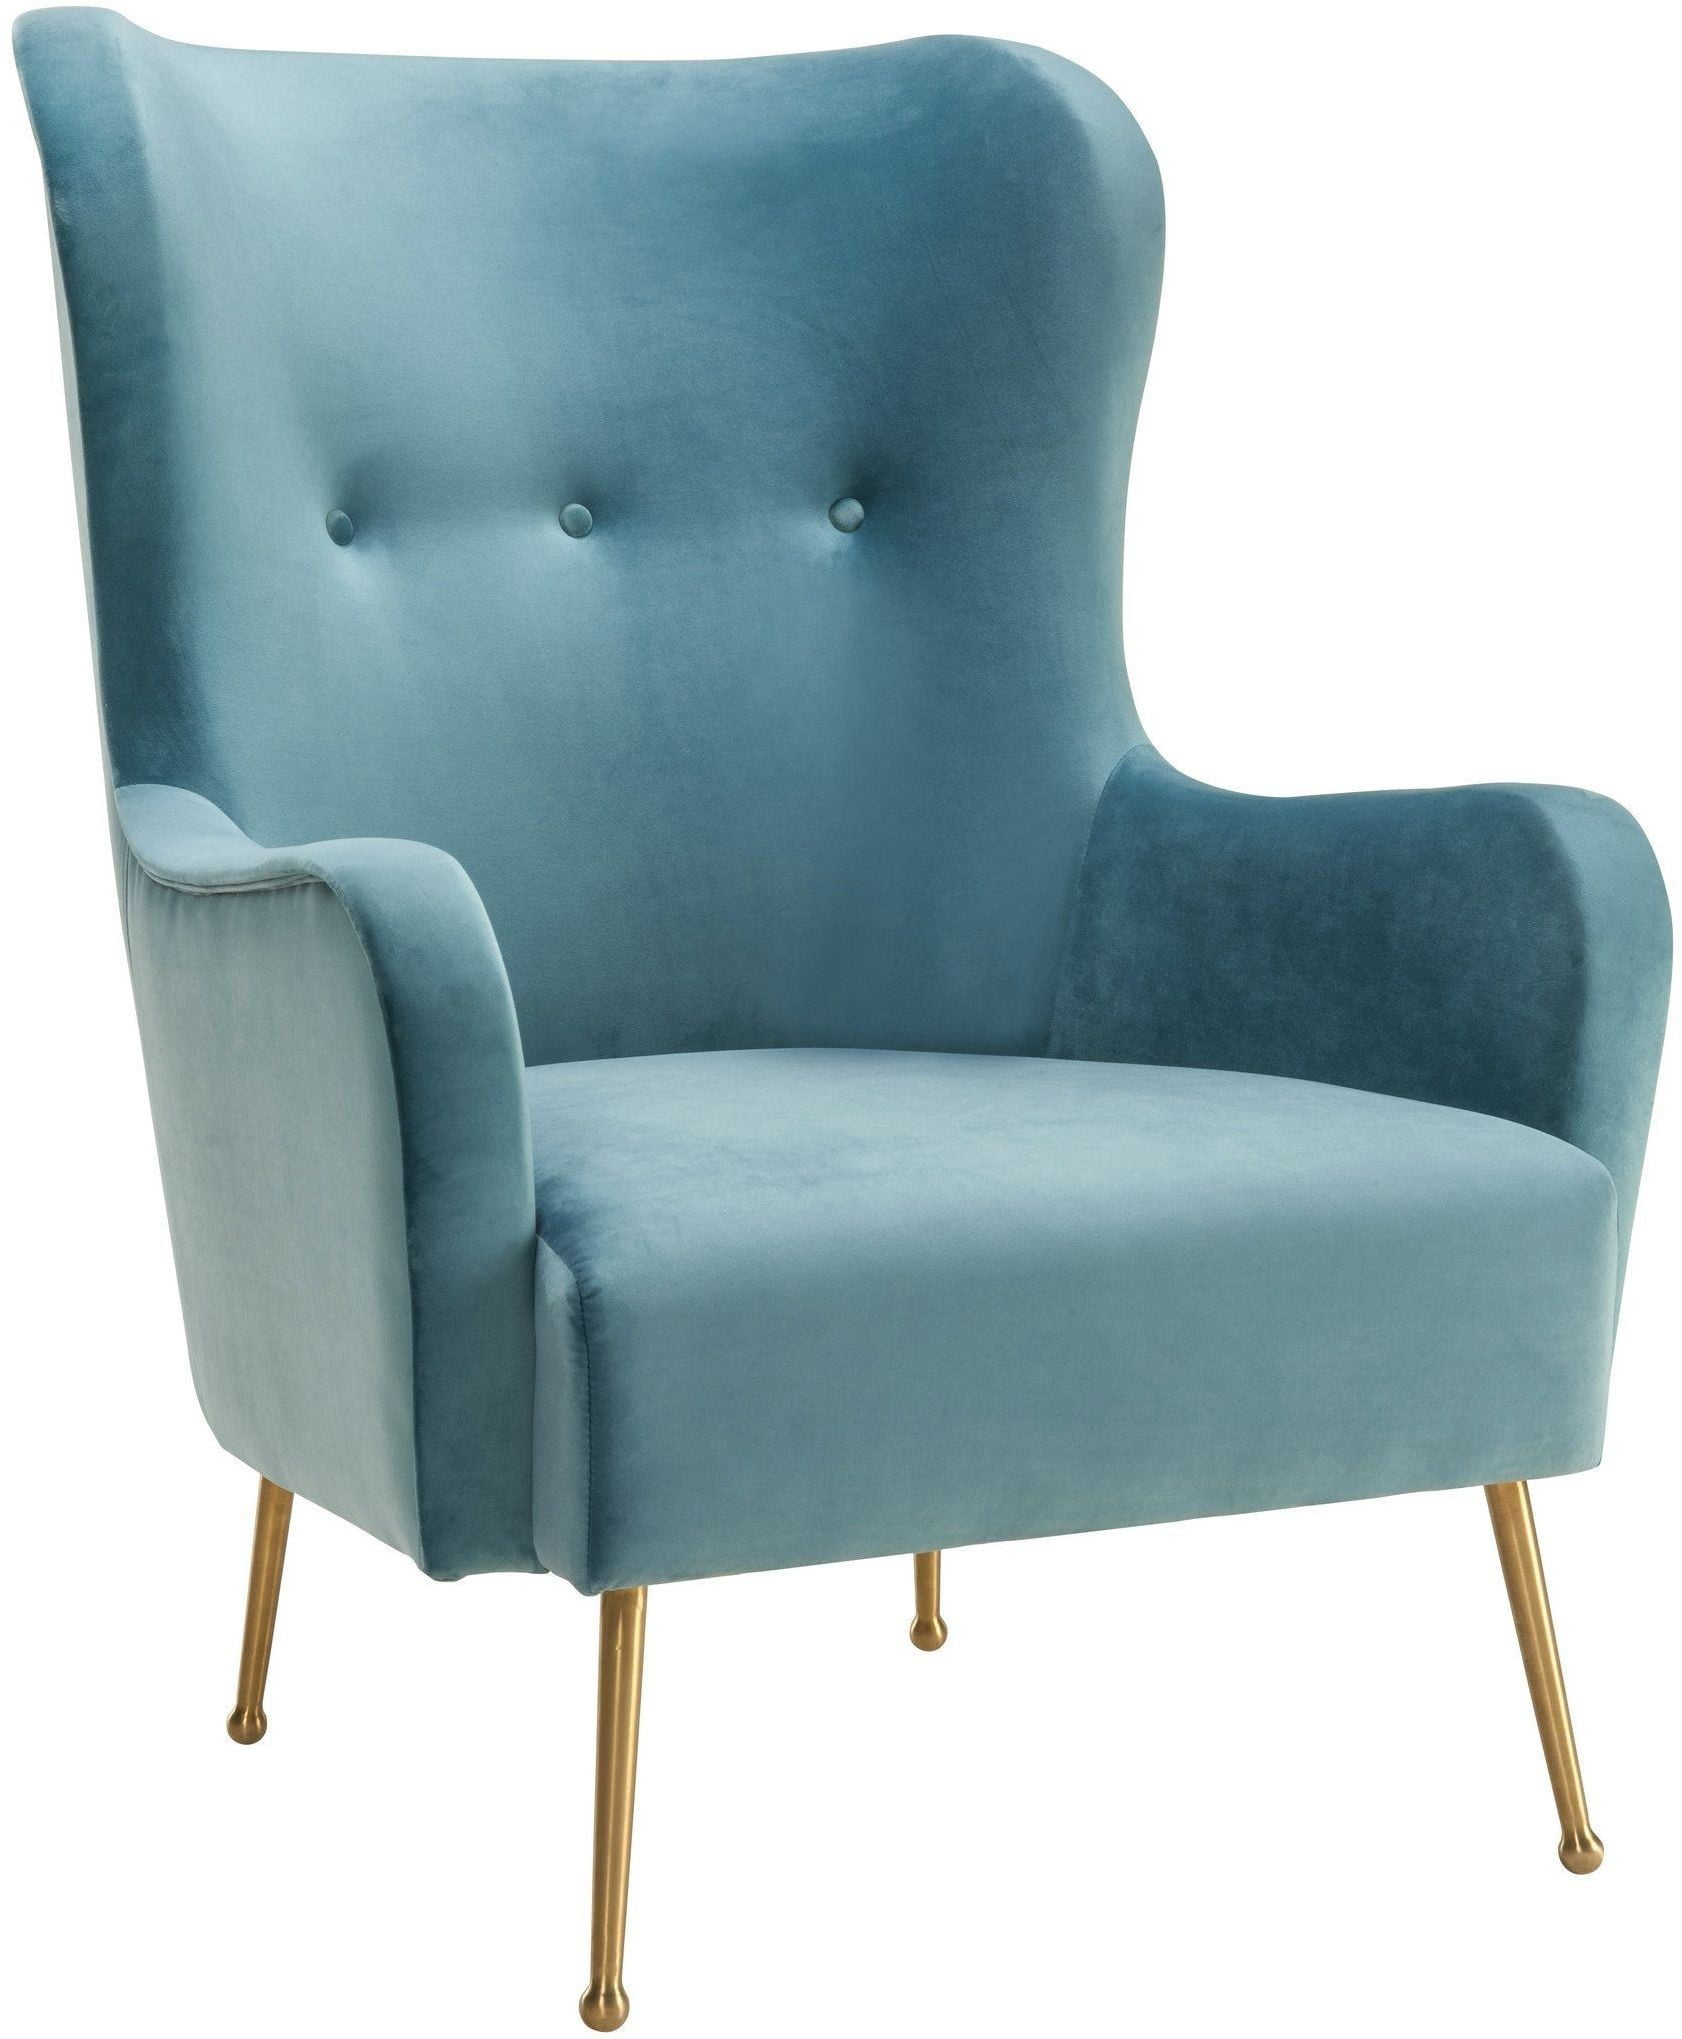 Blue Velvet Chair Ethan Sea Blue Velvet Chair From Tov Coleman Furniture